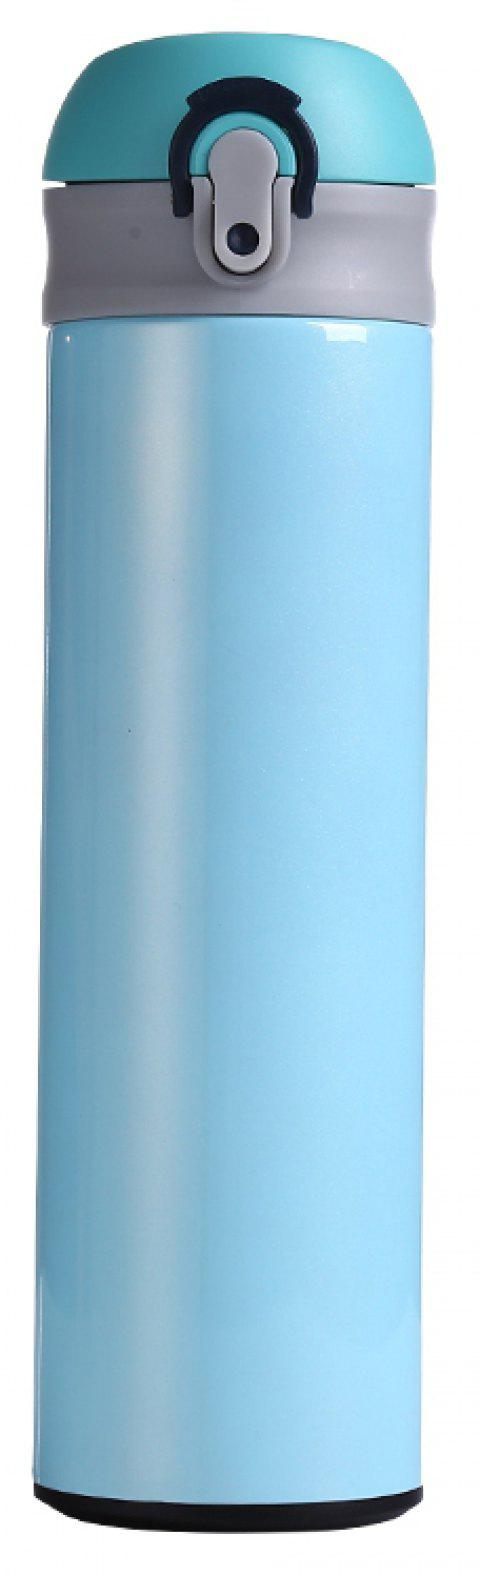 Starry Sky Pattern Double Stainless Steel Vacuum Cup 500ML - LIGHT BLUE